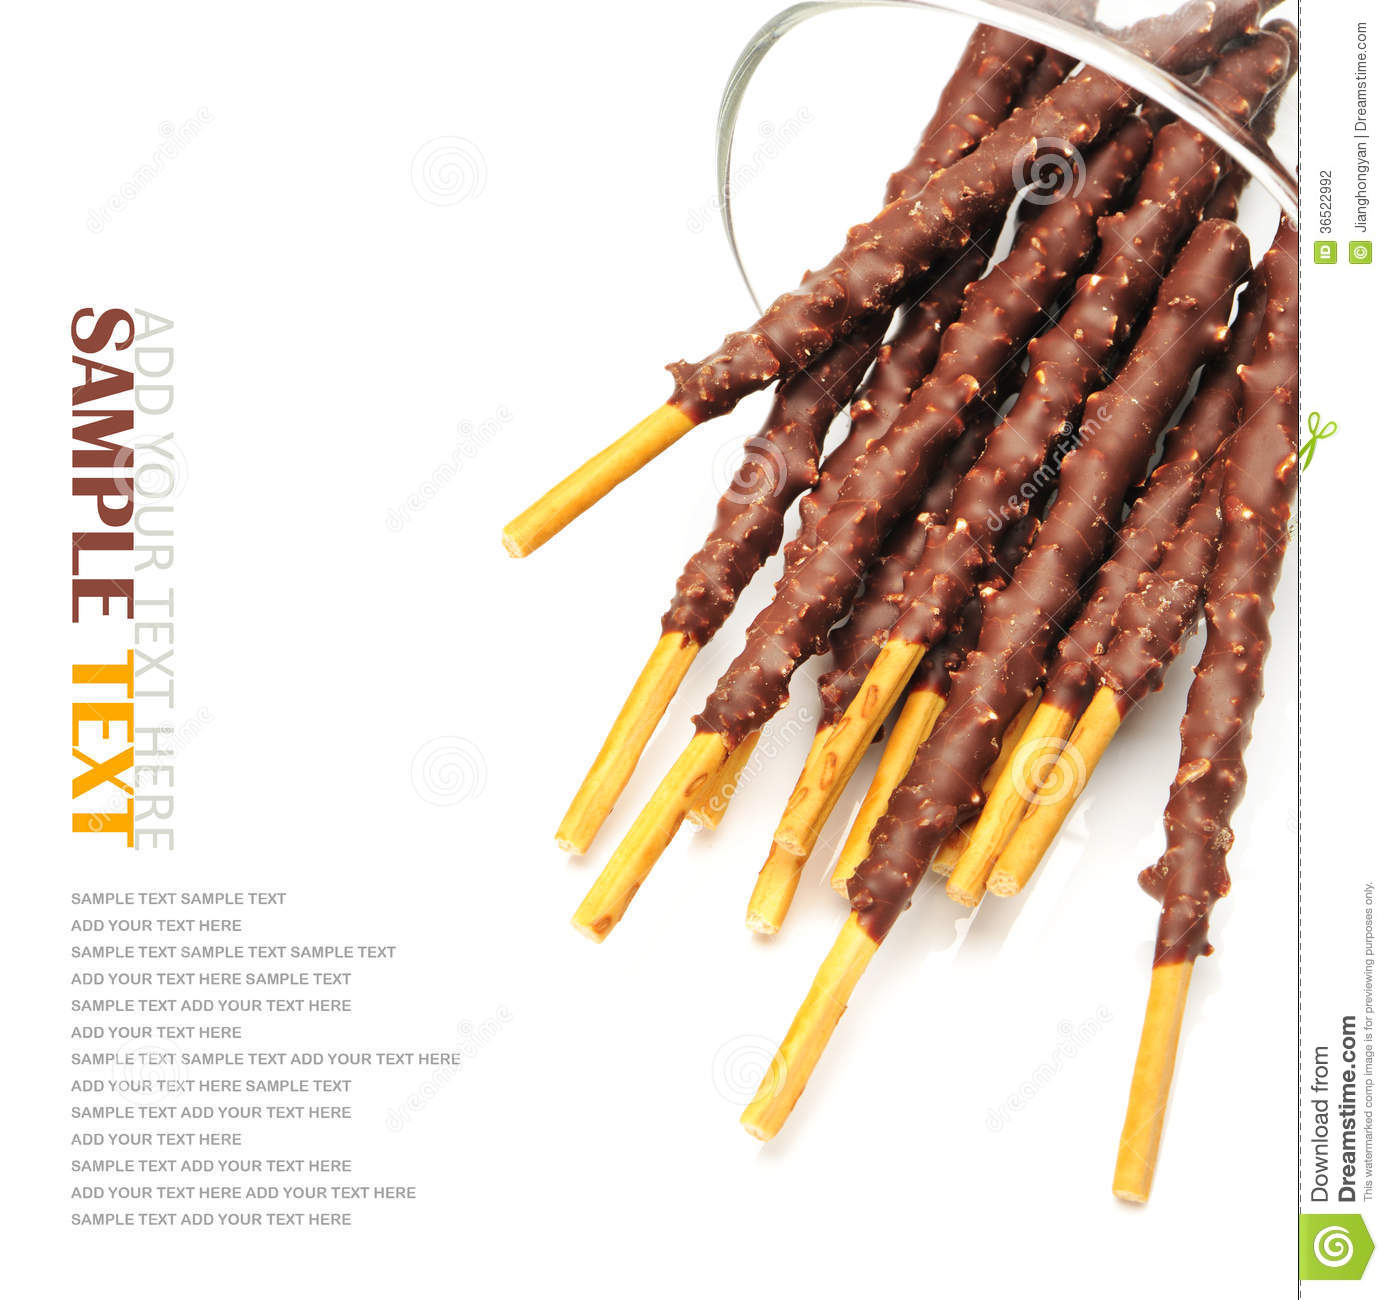 Breadsticks Covered With Chocolate Stock Photography